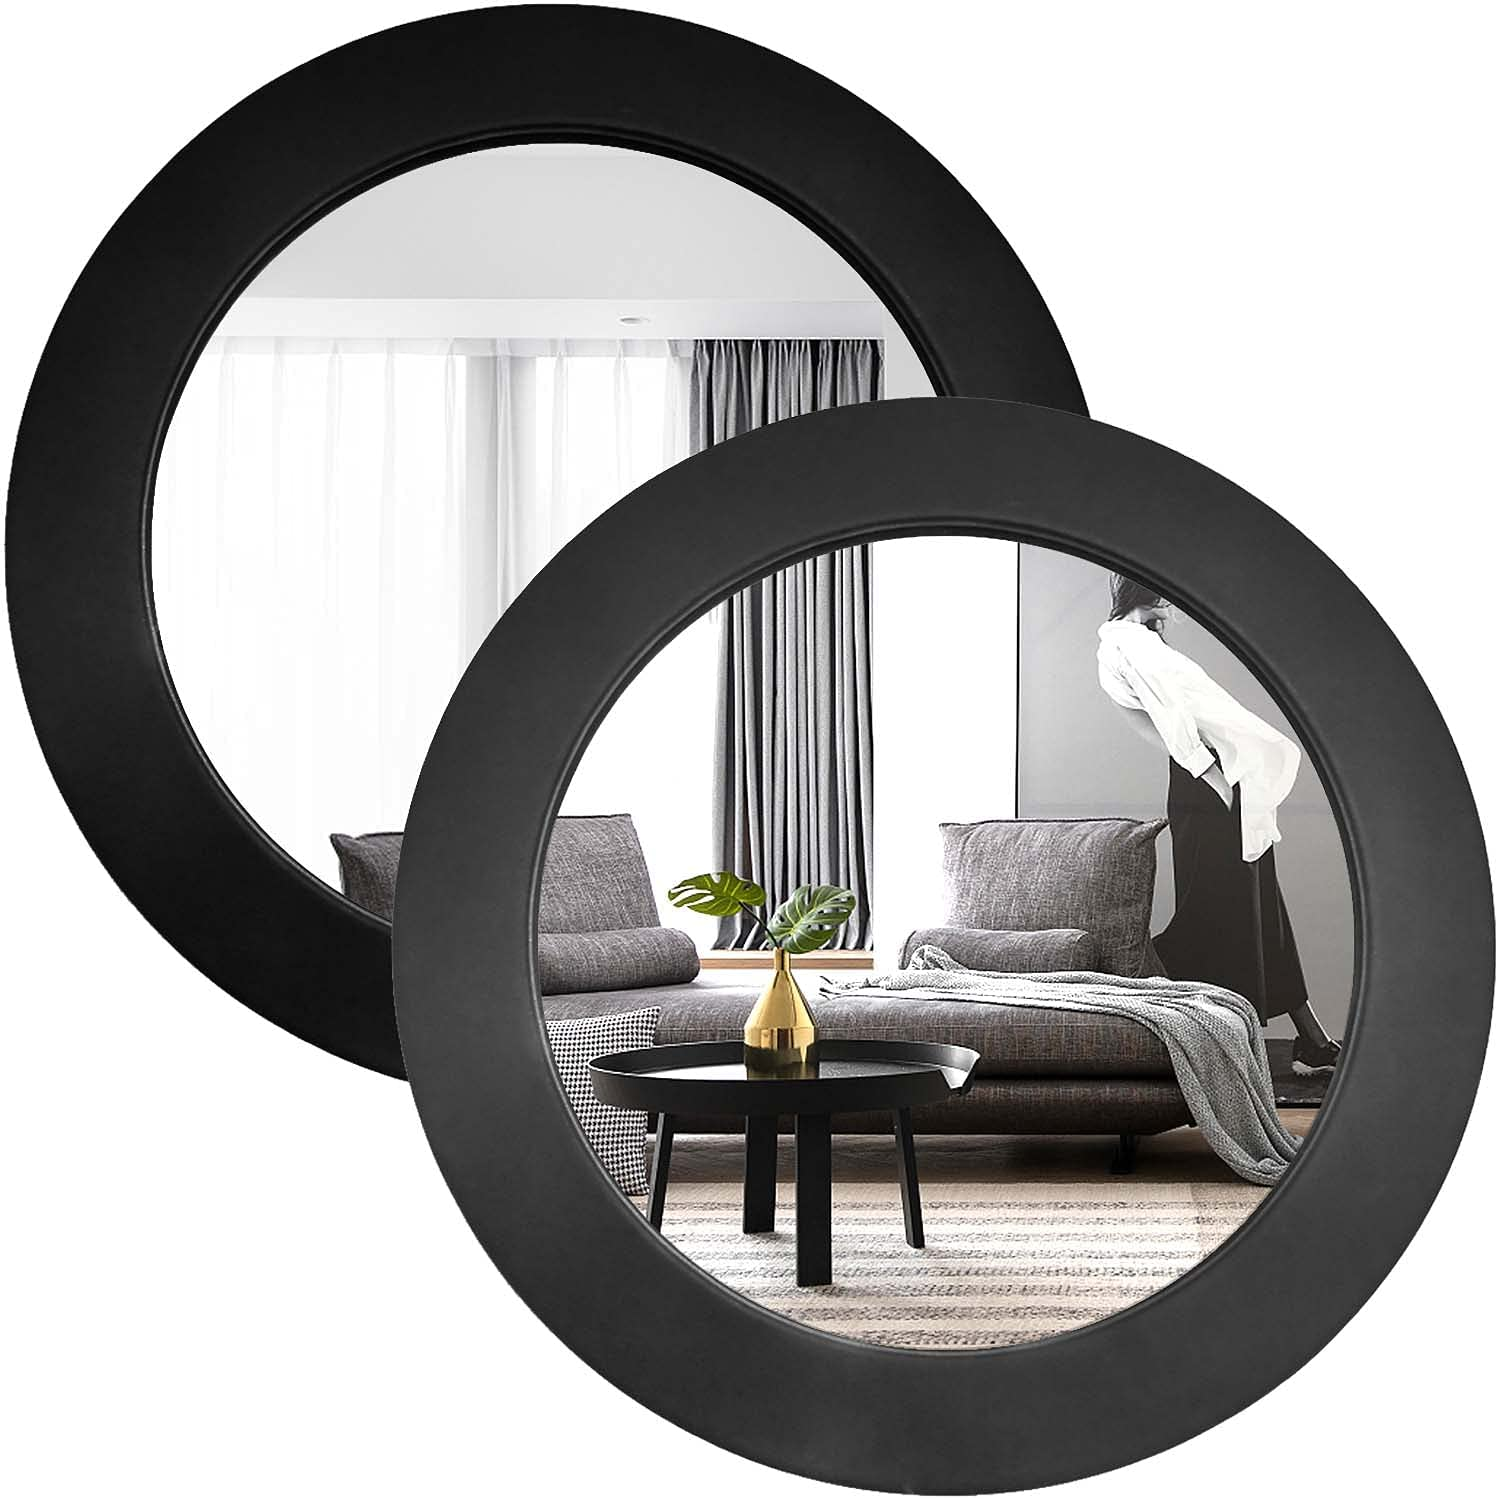 Wocred Mirror (Black 2 PCS, 12 inch) Wocred Black Round Mirror for Wall Decor, Elegant Leather Wall Mirror, 2 pcs Entry Mirror for Entryways, Washrooms, Living Rooms and More (Black, 12